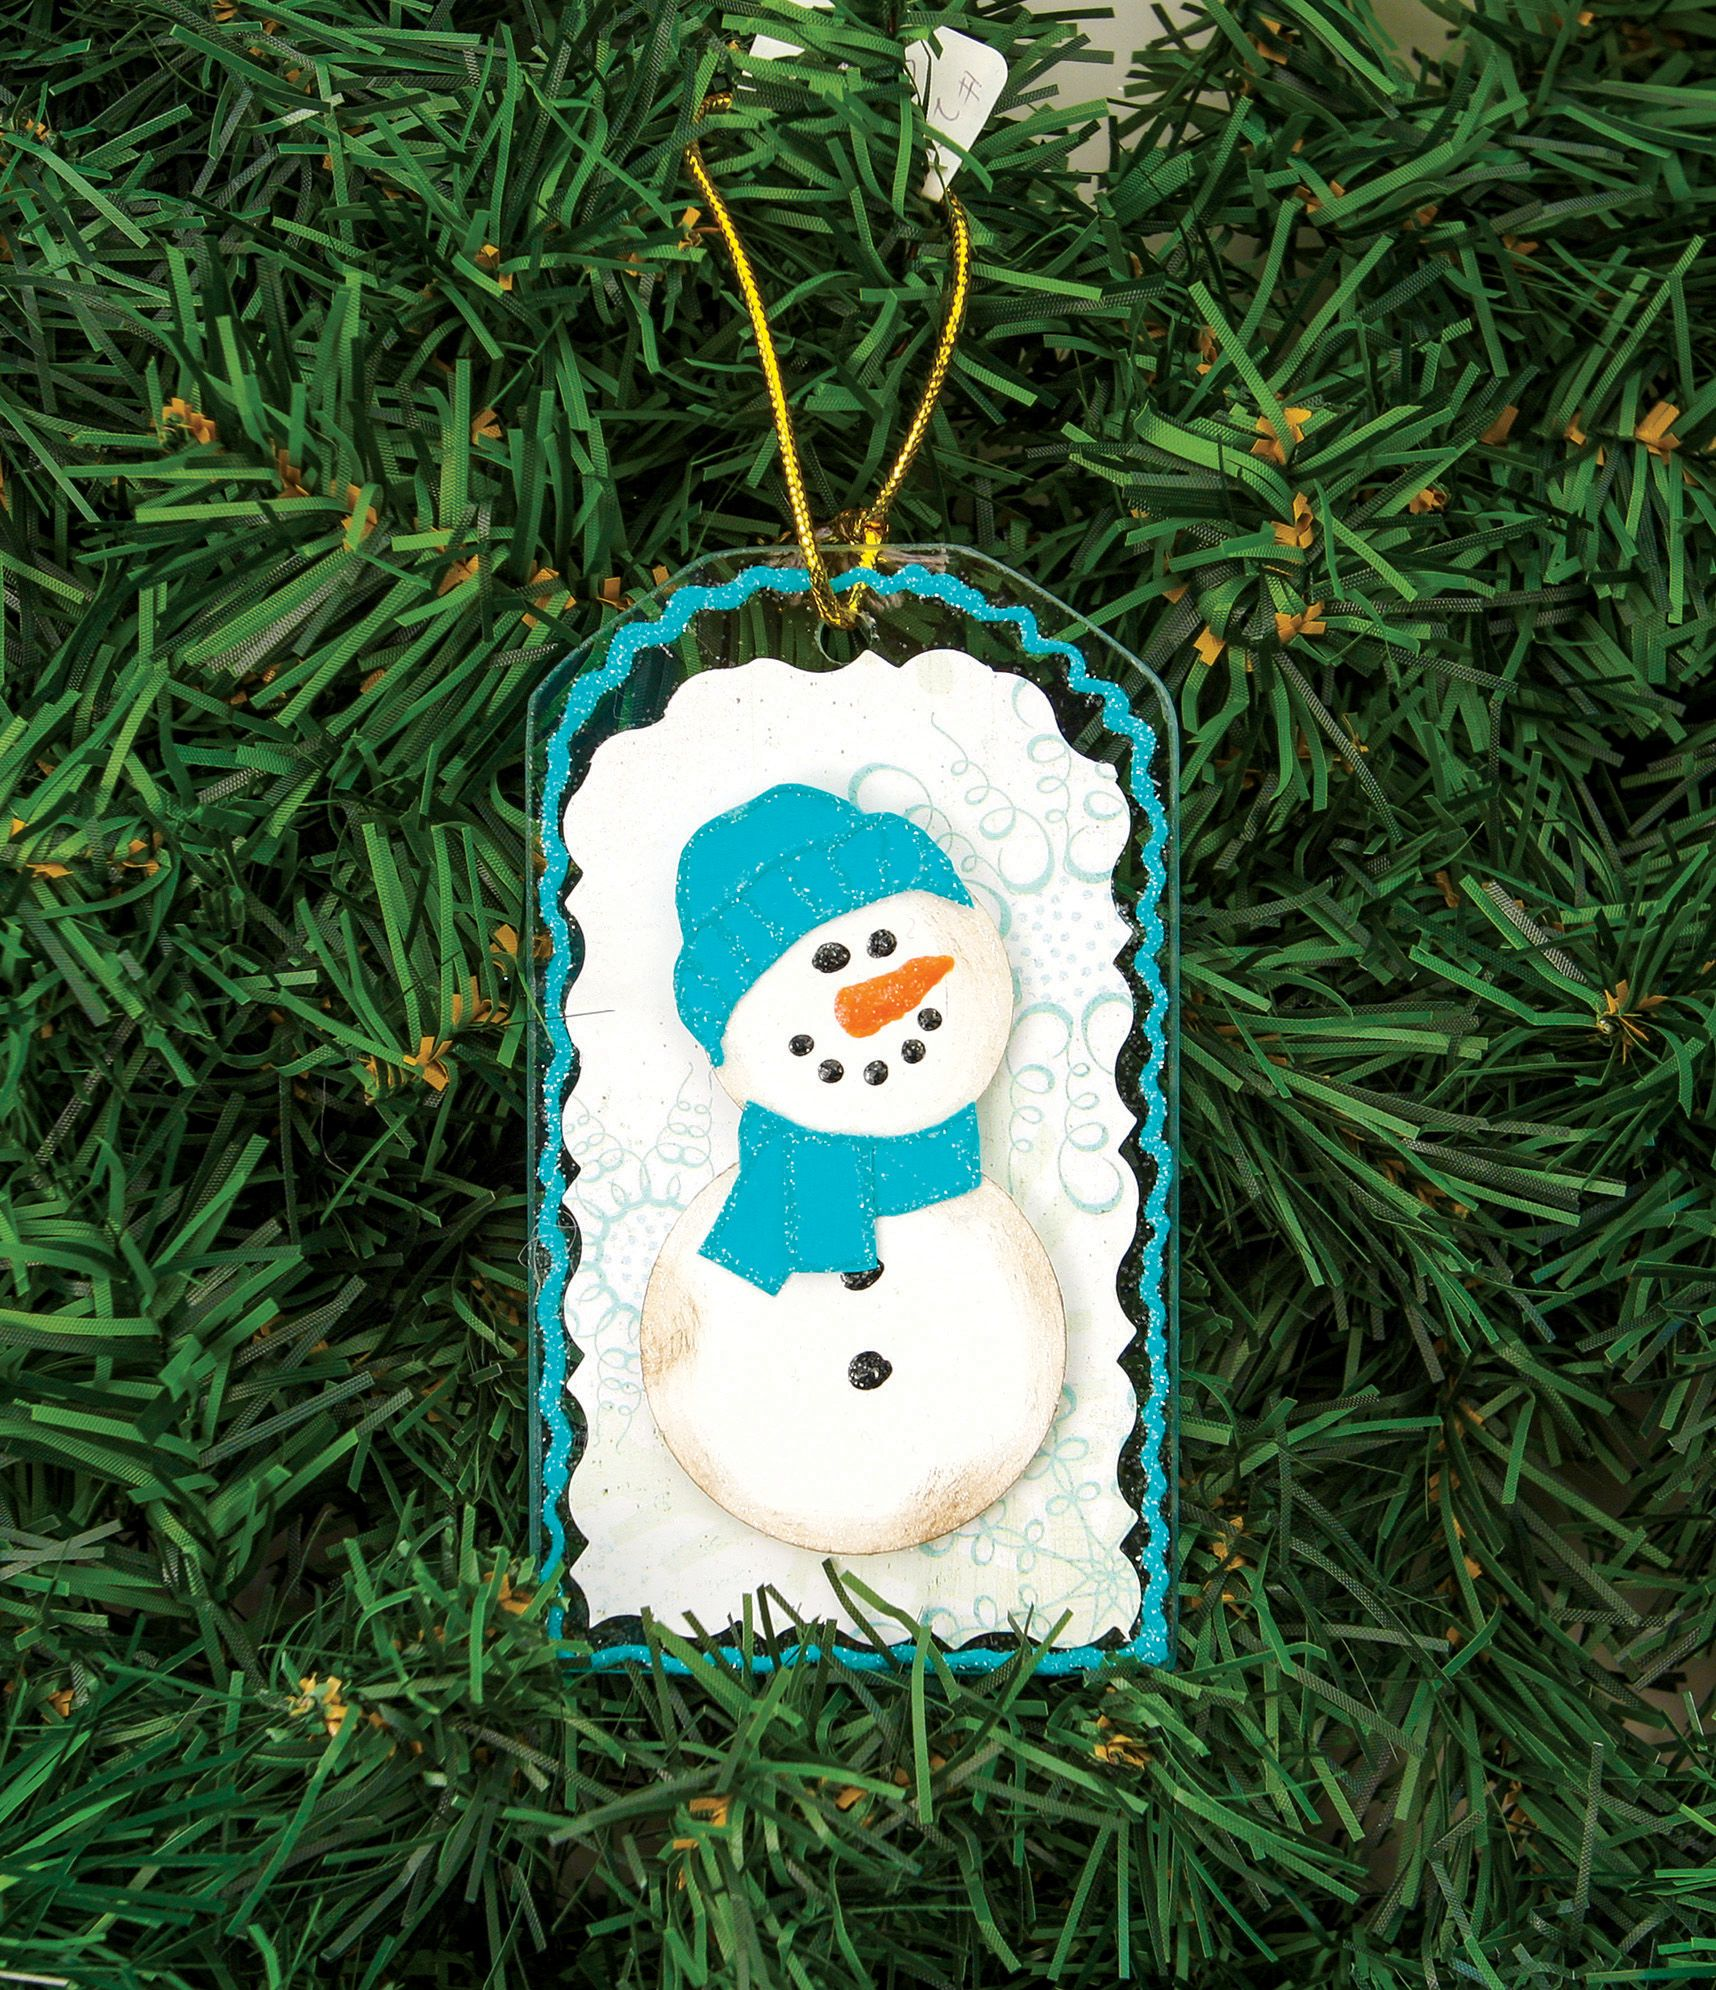 Nicole crafts snowman tag glass ornament ornaments craft